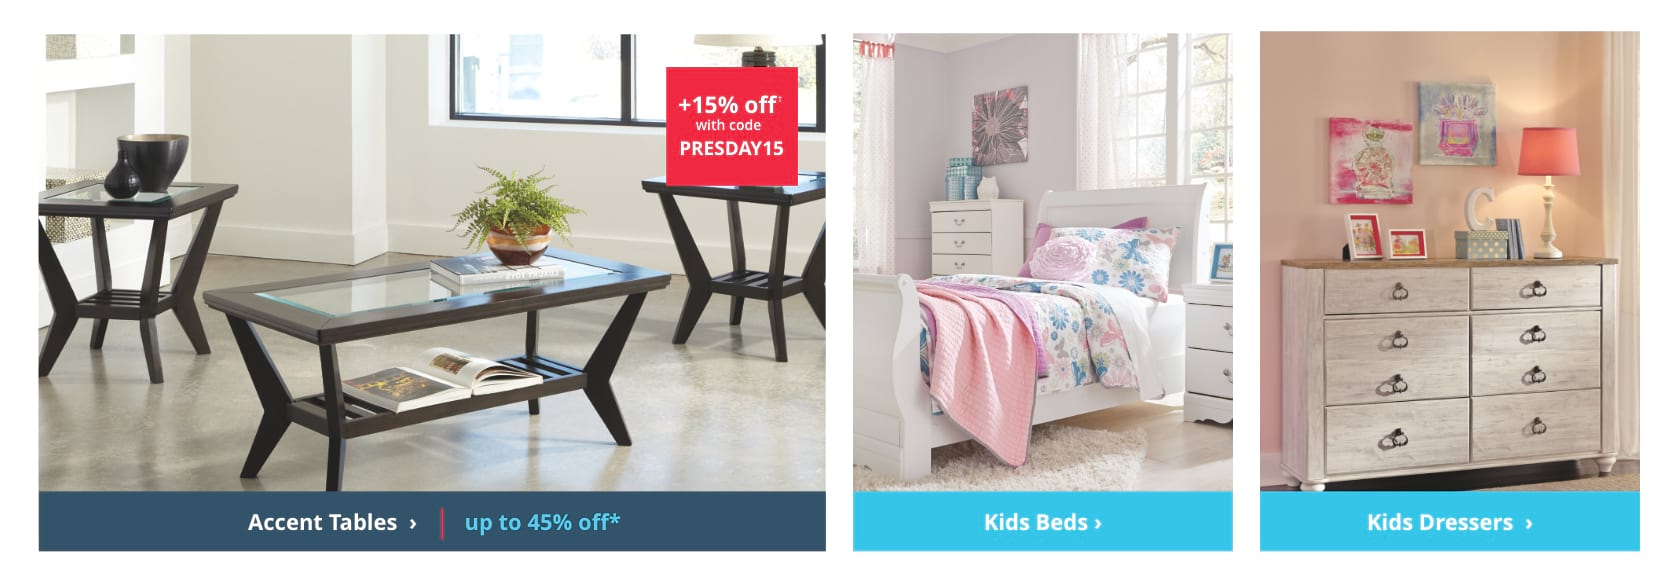 Shop TV Stands, Kids Beds, Kids Dressers